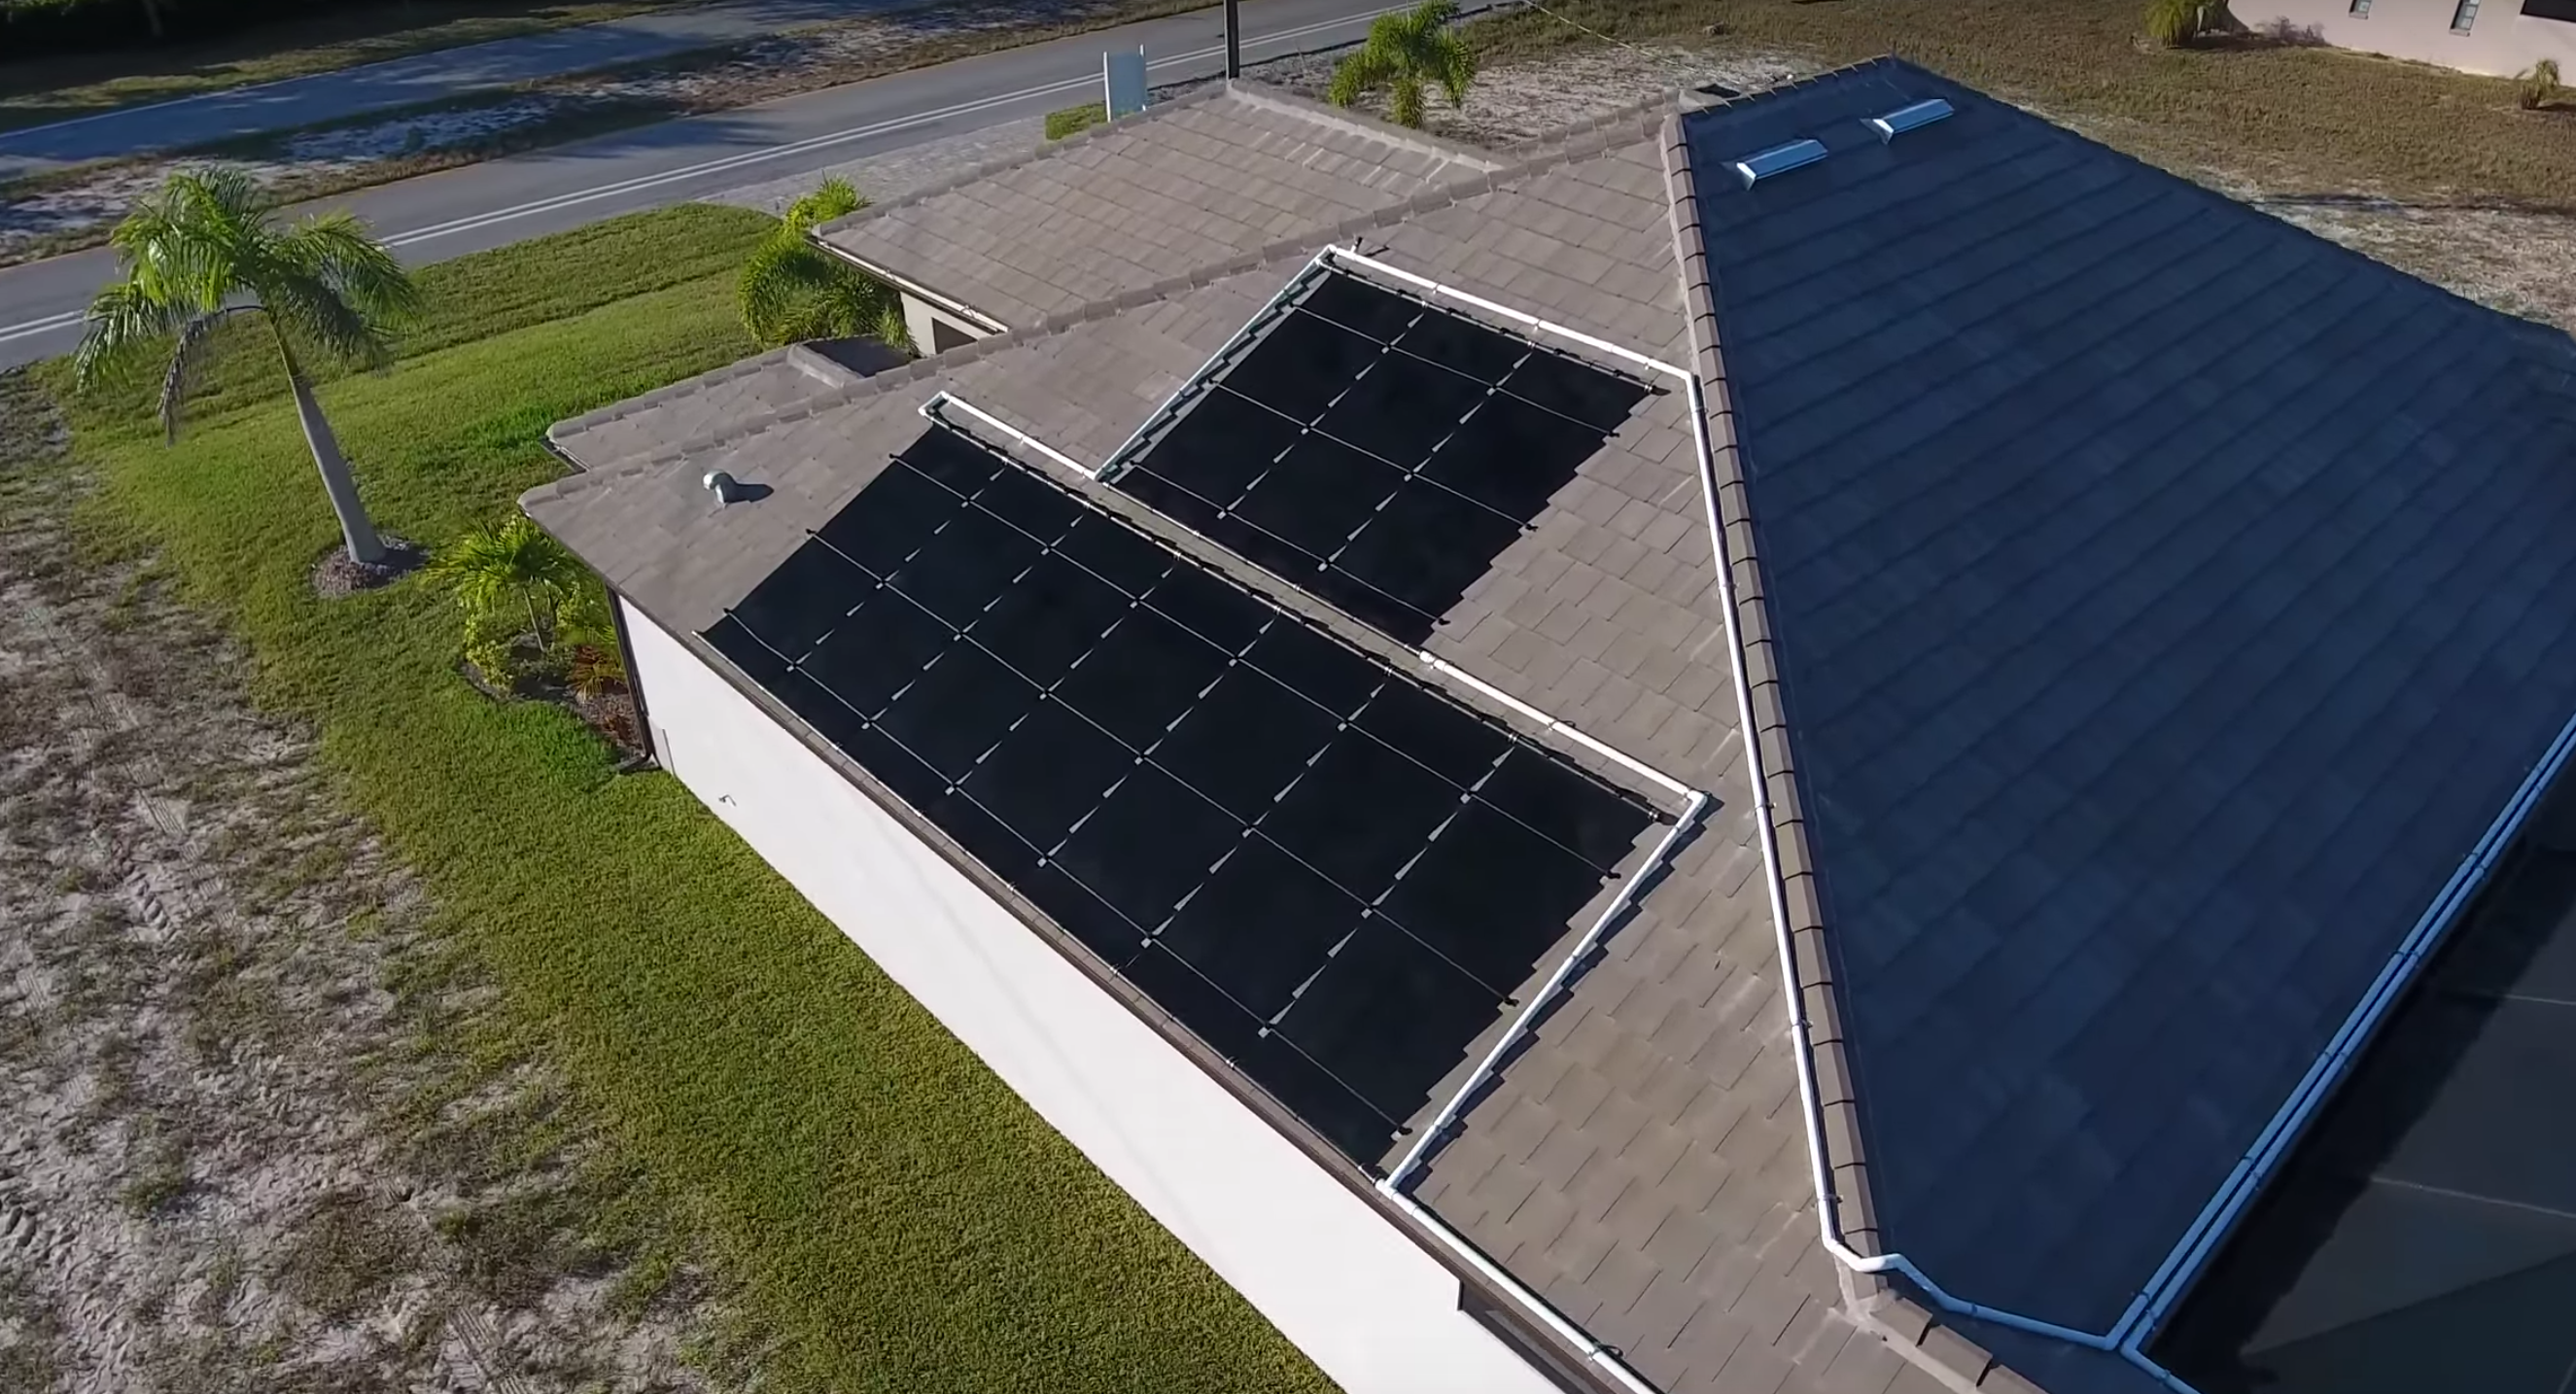 How Hot Can Solar Pool Heating Get? - Florida Solar Design Group